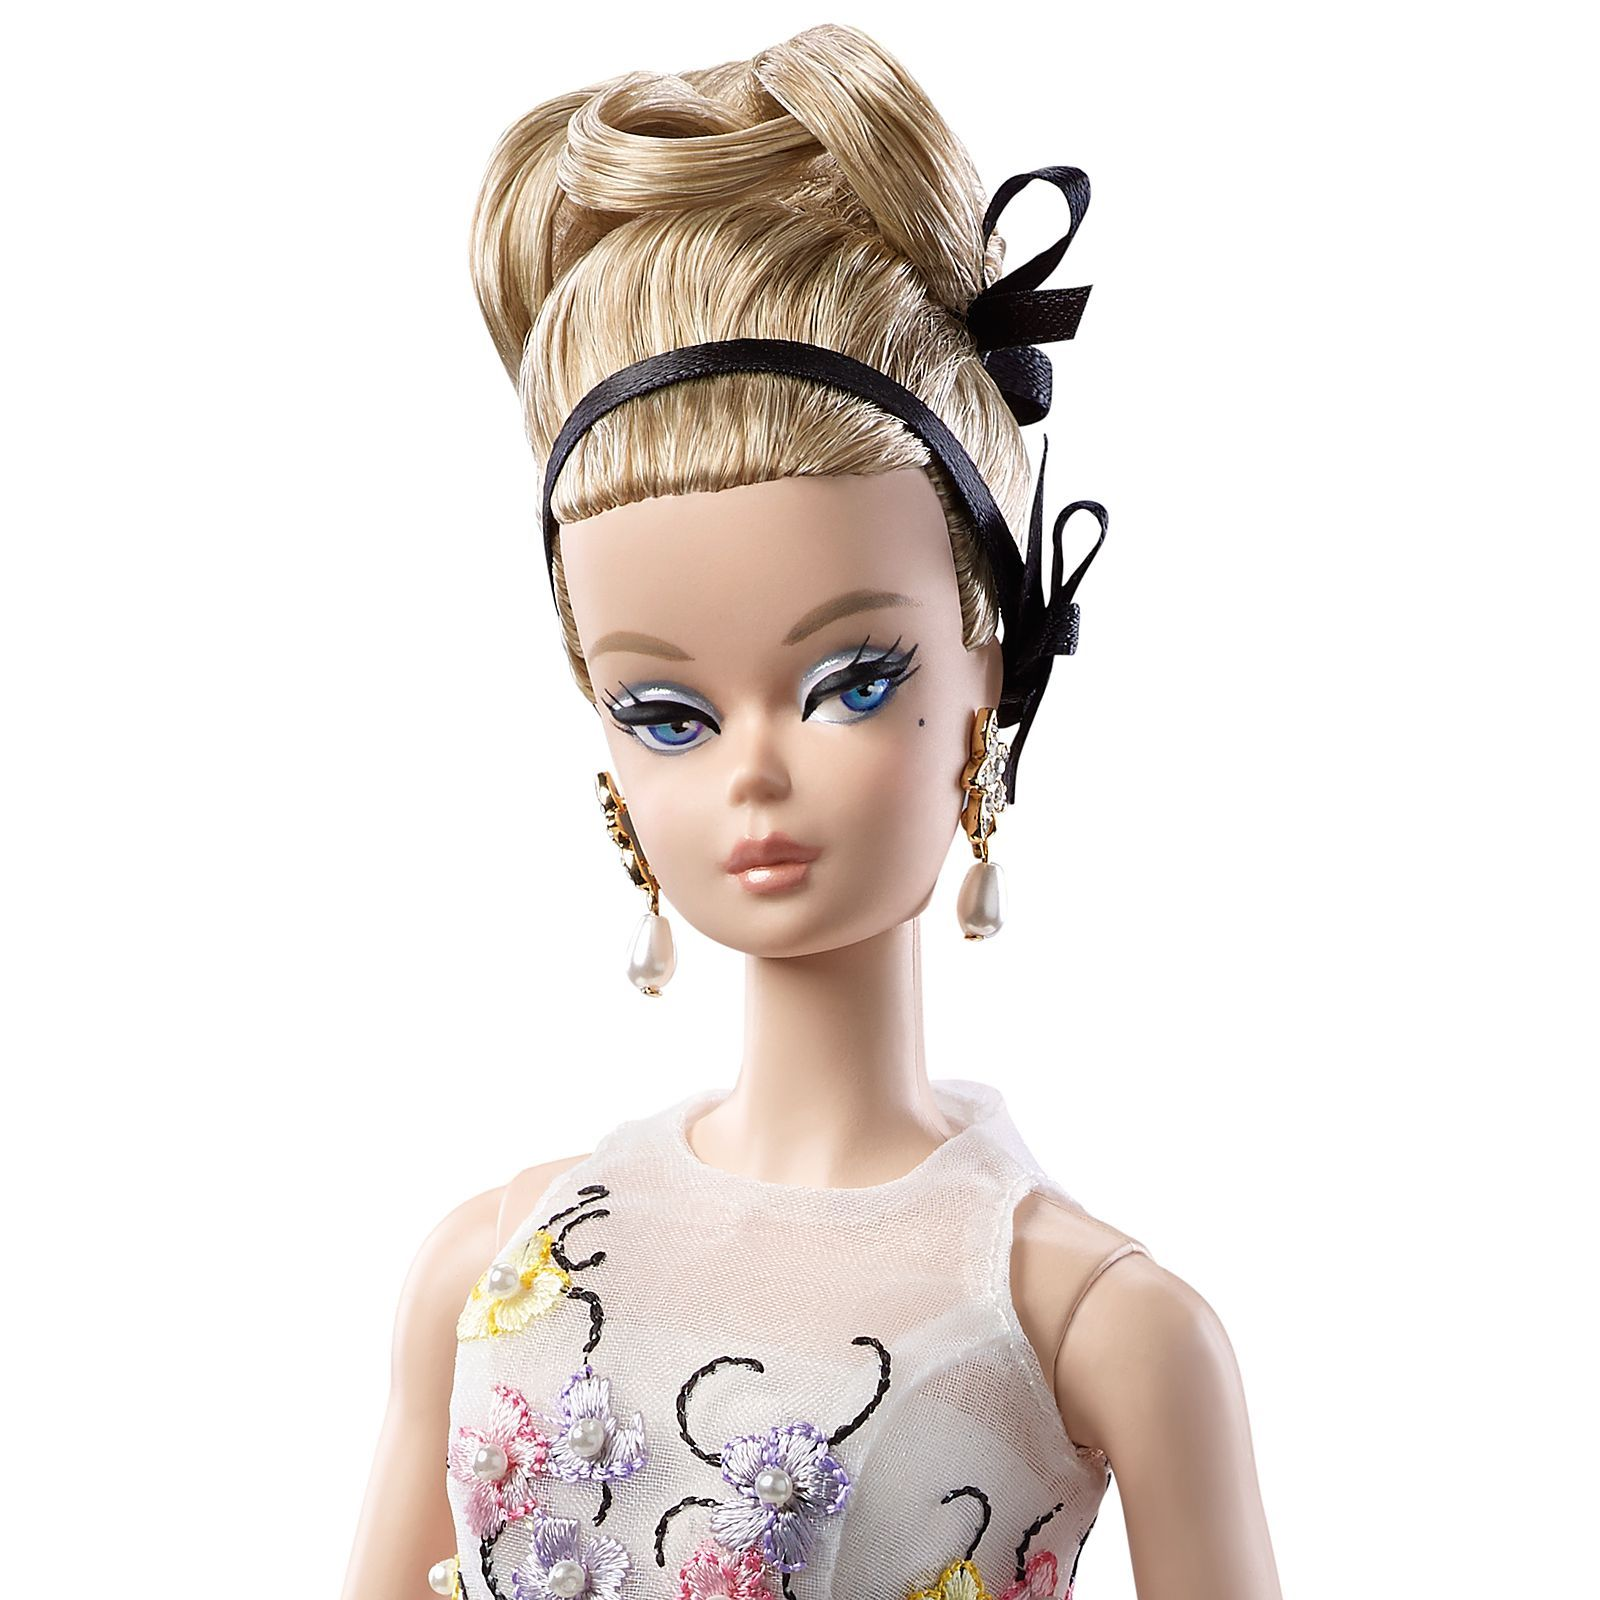 Barbie DGW56 Collection Classic Cocktail Dress Silkstone Doll Mattel